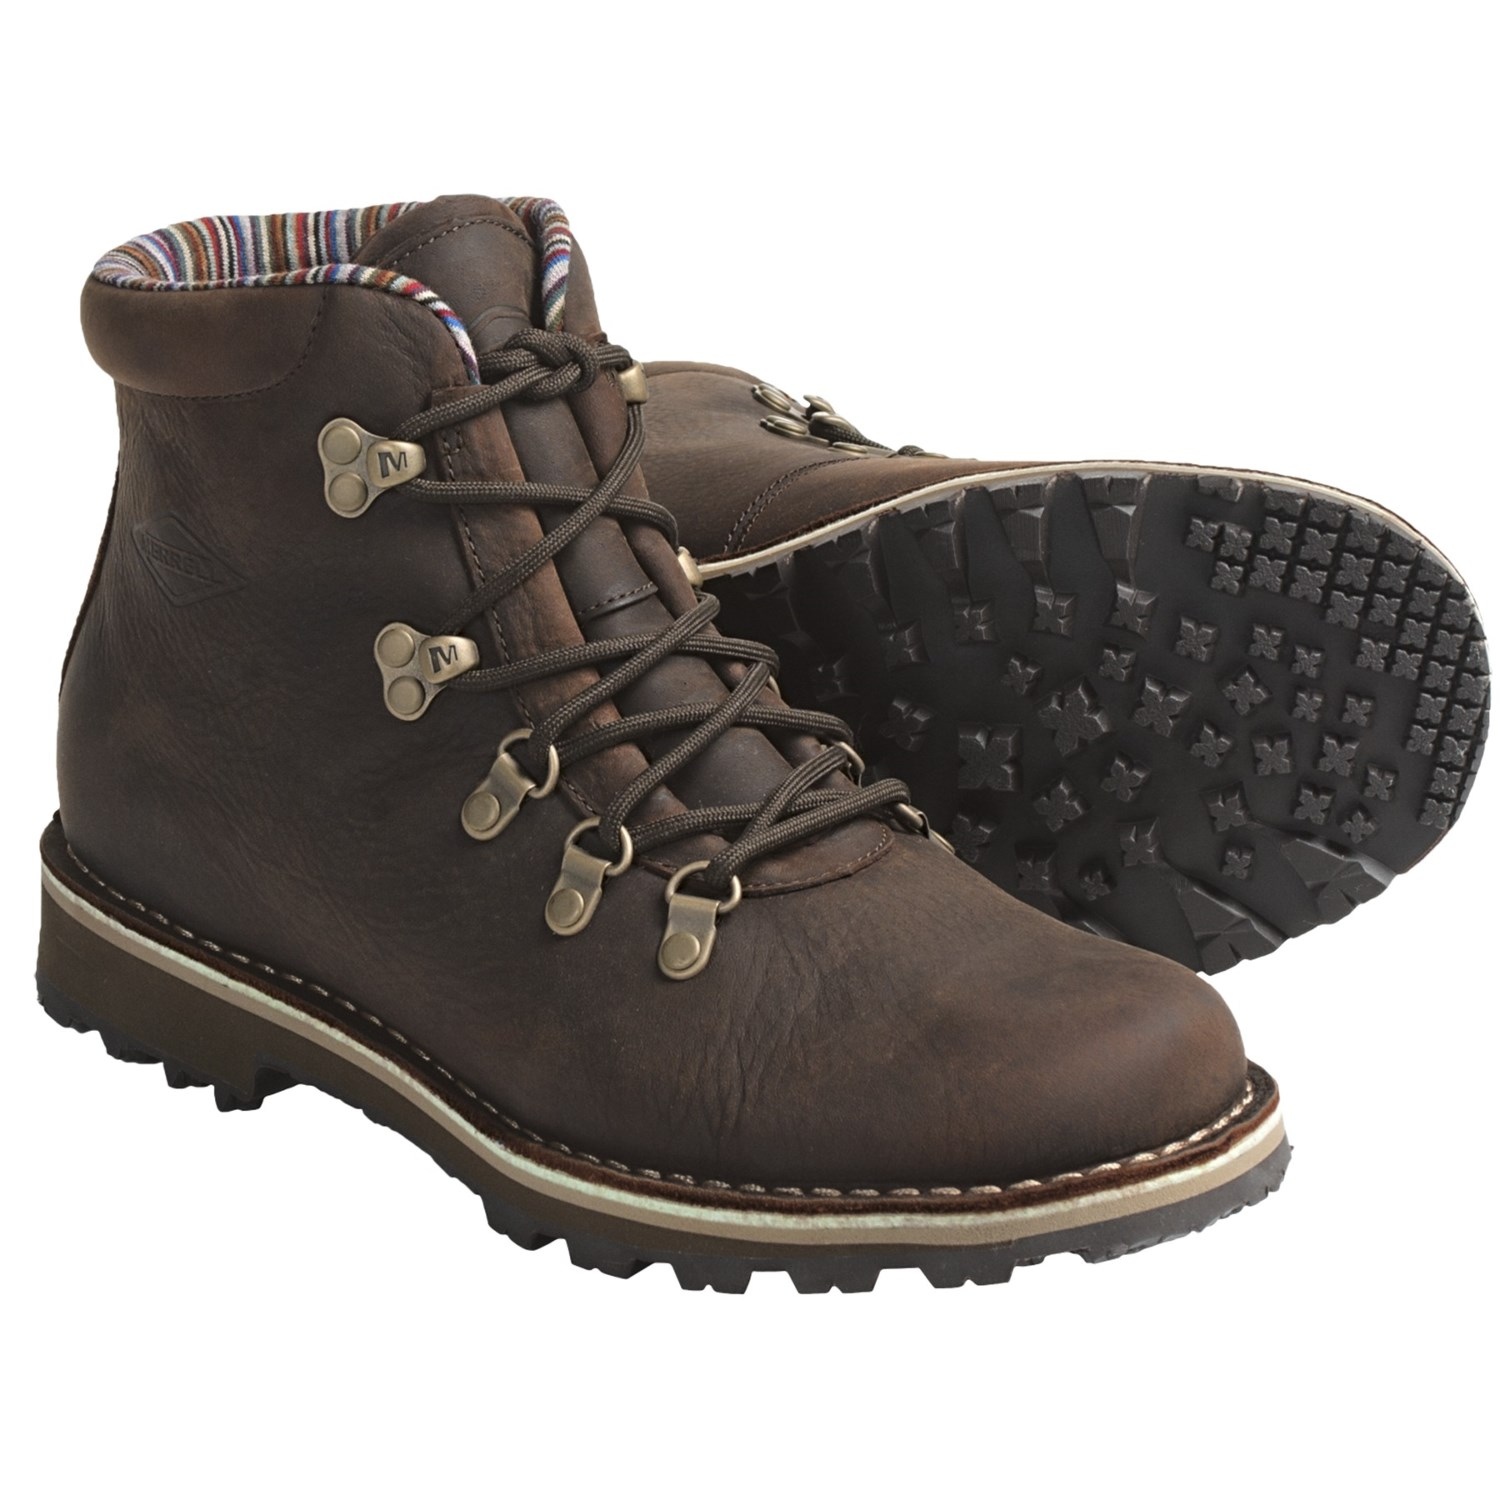 Merrell Wilderness Valley Lace Up Boots Leather